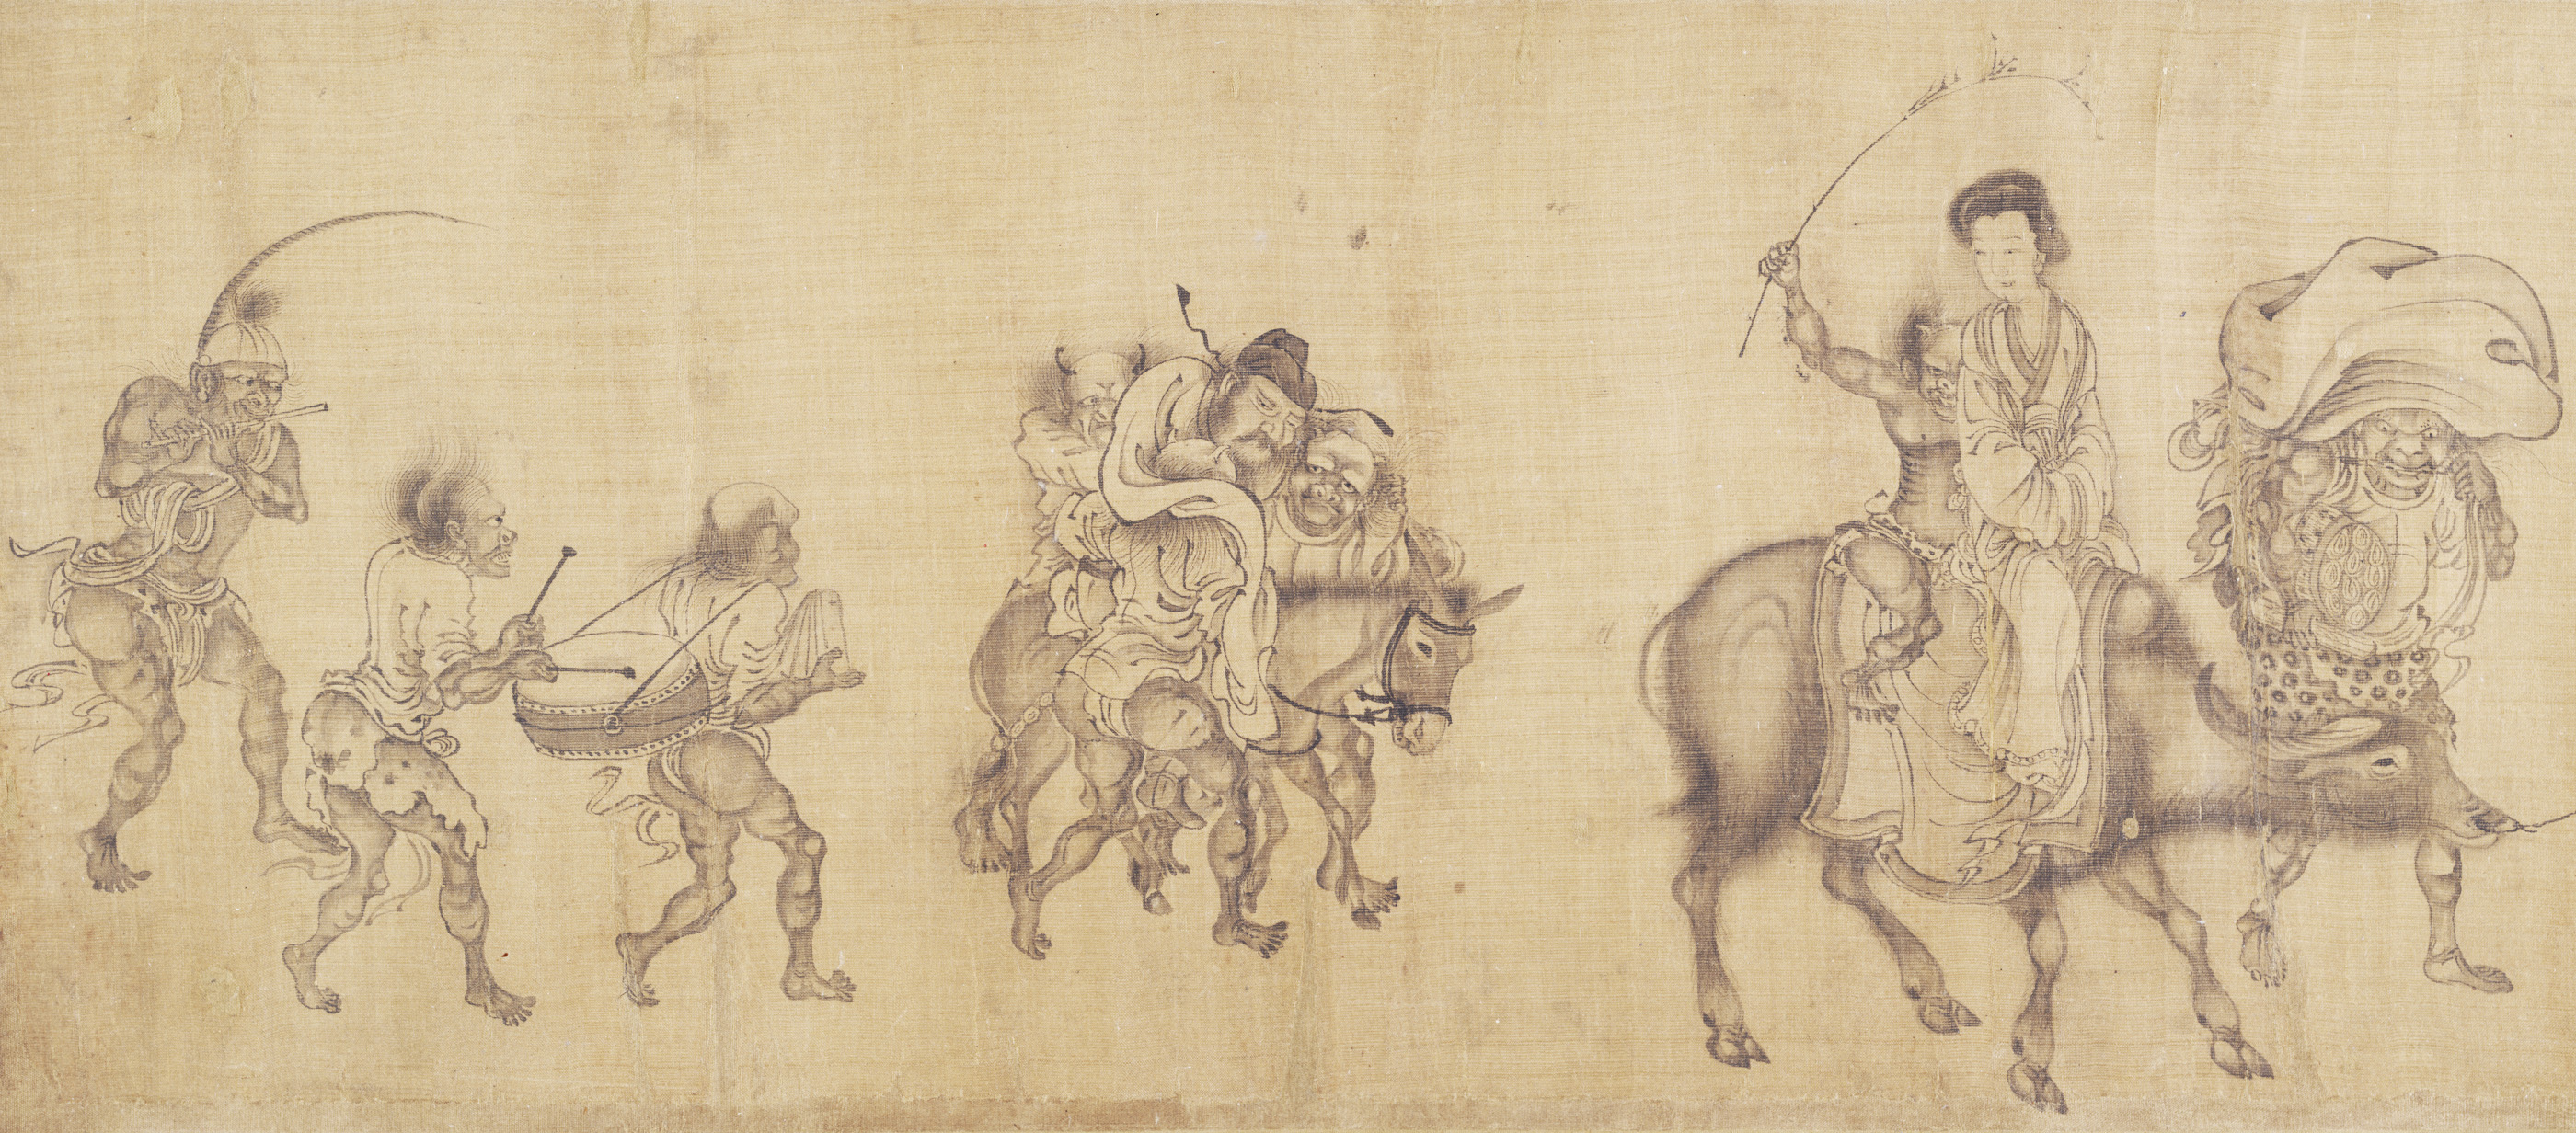 The Demon-Queller Zhong Kui Giving His Sister Away in Marriage